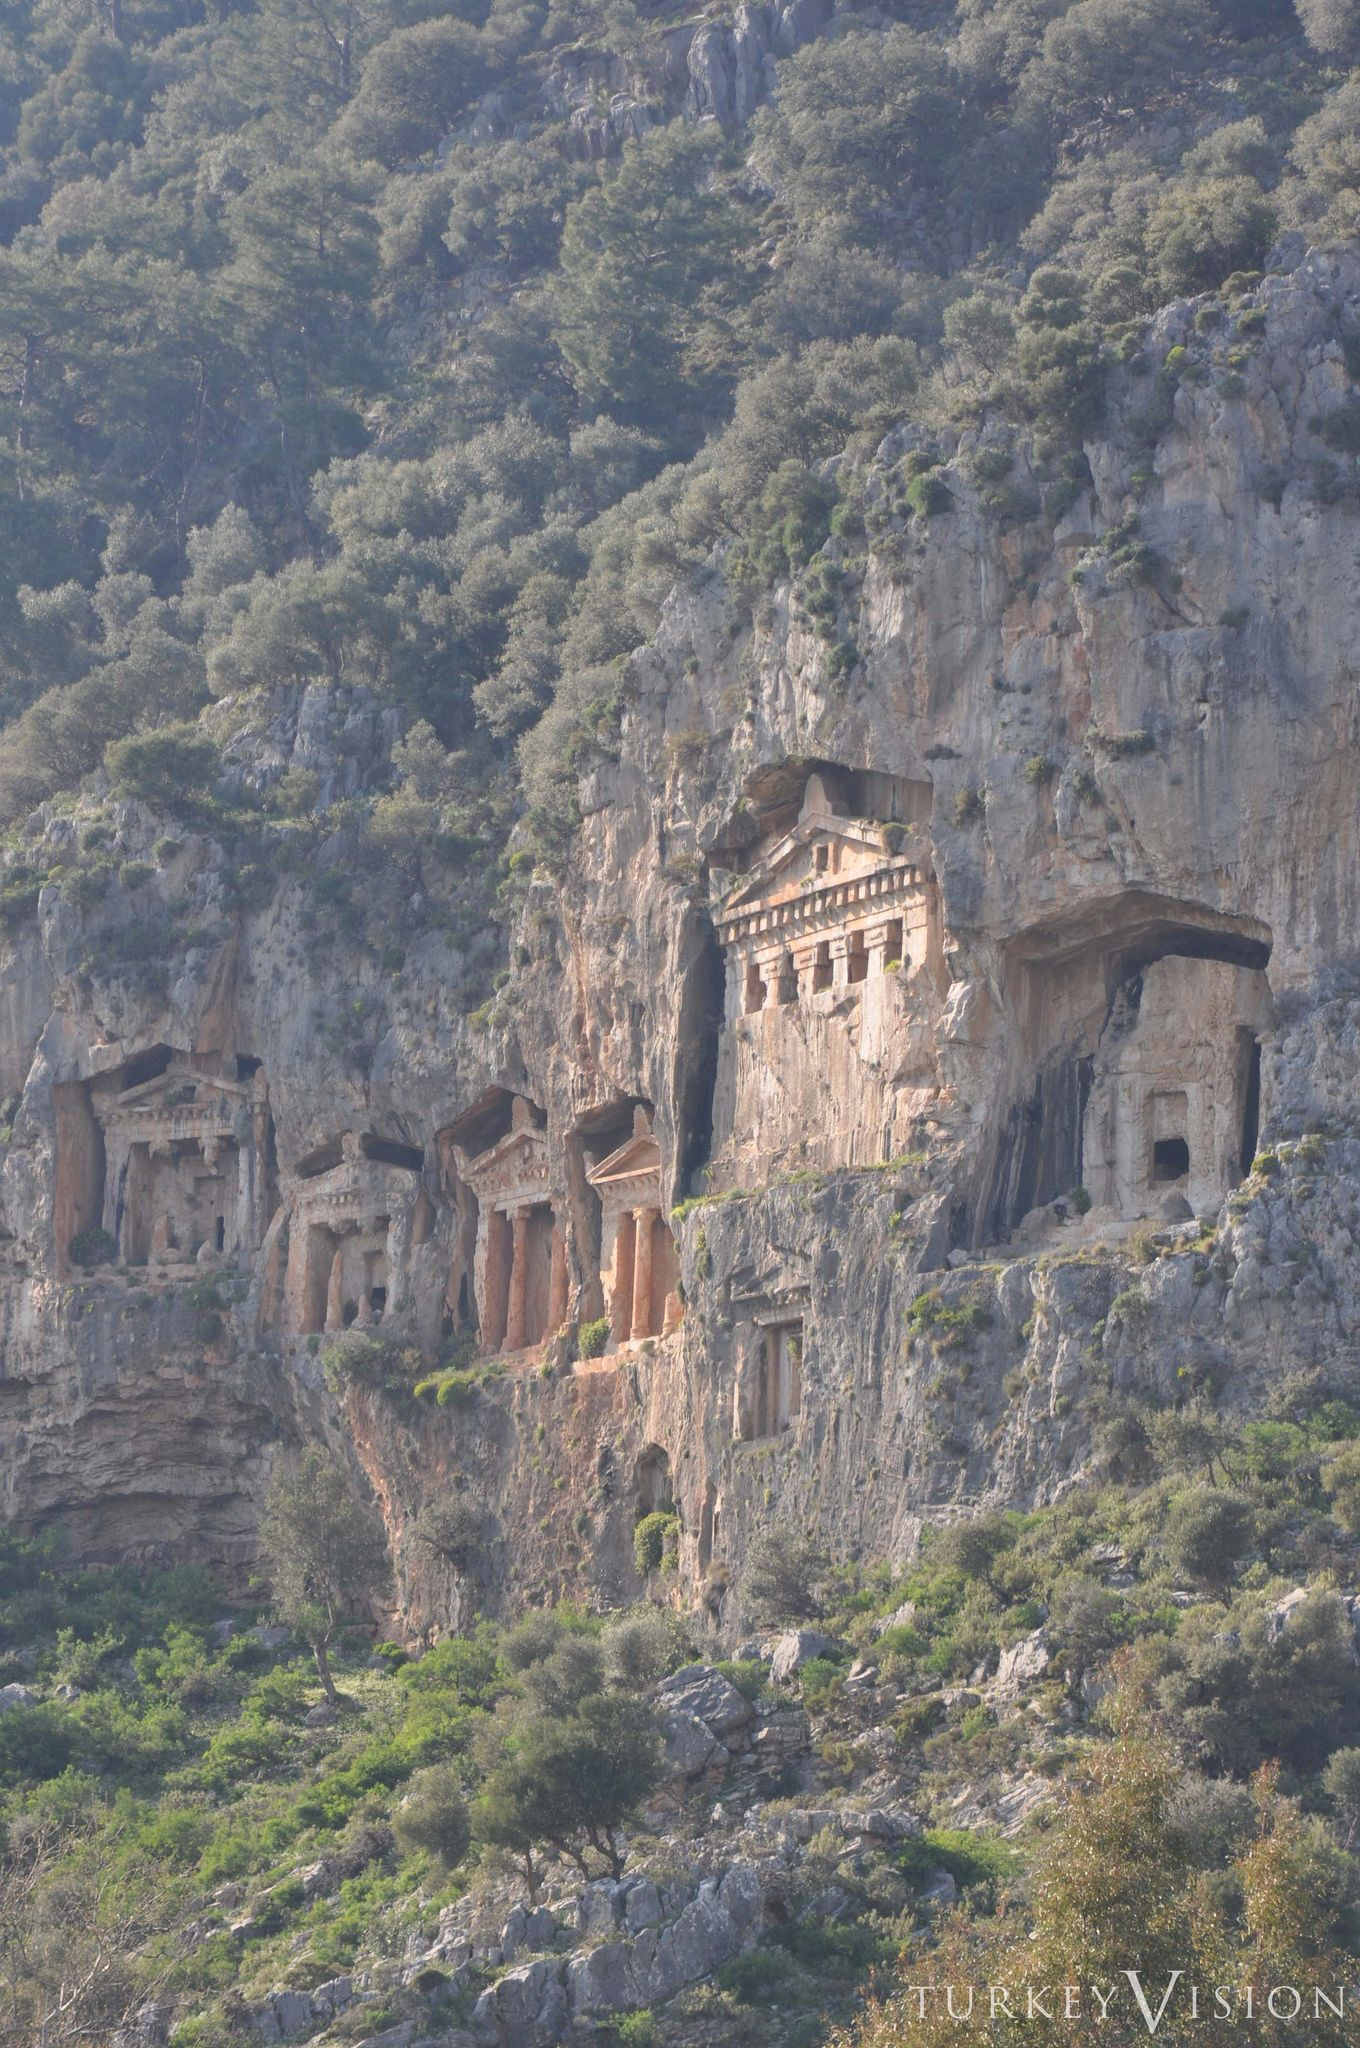 Kaunos Tombs in Dalyan: Six rock tombs on the Dalyan river (4th - 2nd century BC). The facades of the rock tombs resemble the fronts of Hellenistic temples with two Ionian pillars, a triangular pediment, an architrave with toothed friezes, and acroterions shaped like palm leaves.